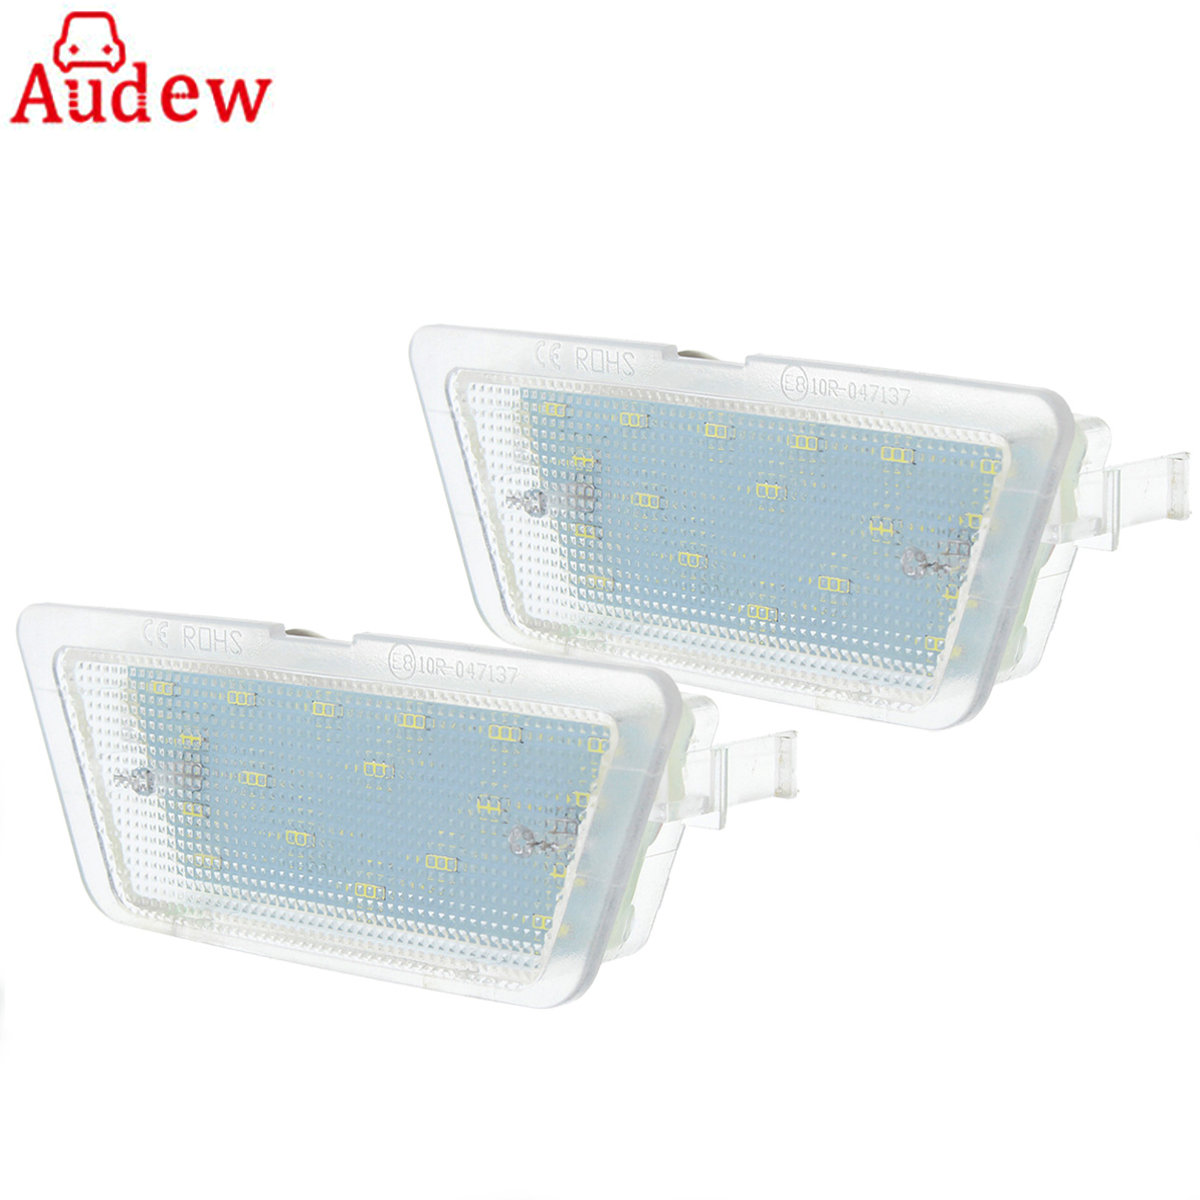 Car LED License Number Plate Light White Auto Tail Plate Lamp 12V-30V For Vauxhall Opel Astra G MK4 1998-2004 audew 18 led license number plate light for vauxhall opel corsa c d astra h insignia